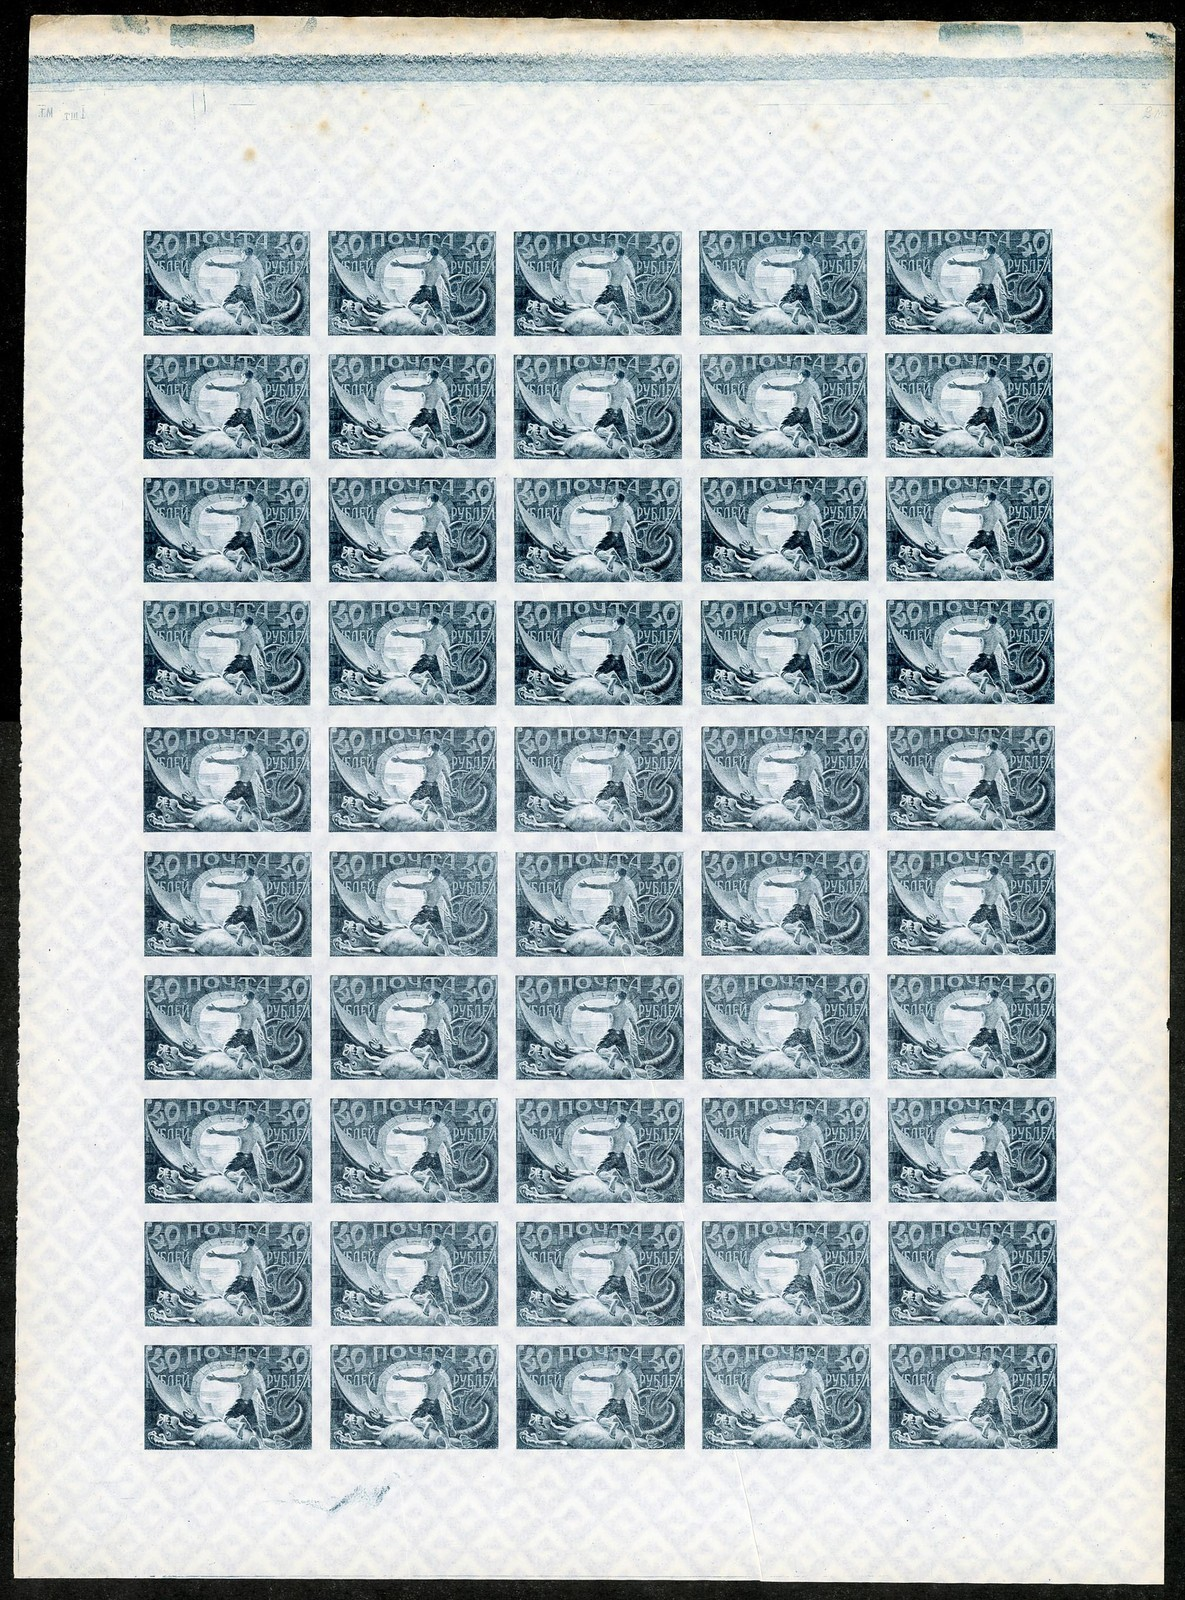 Russia Dragon Slayer Stamp Full Sheet of 50